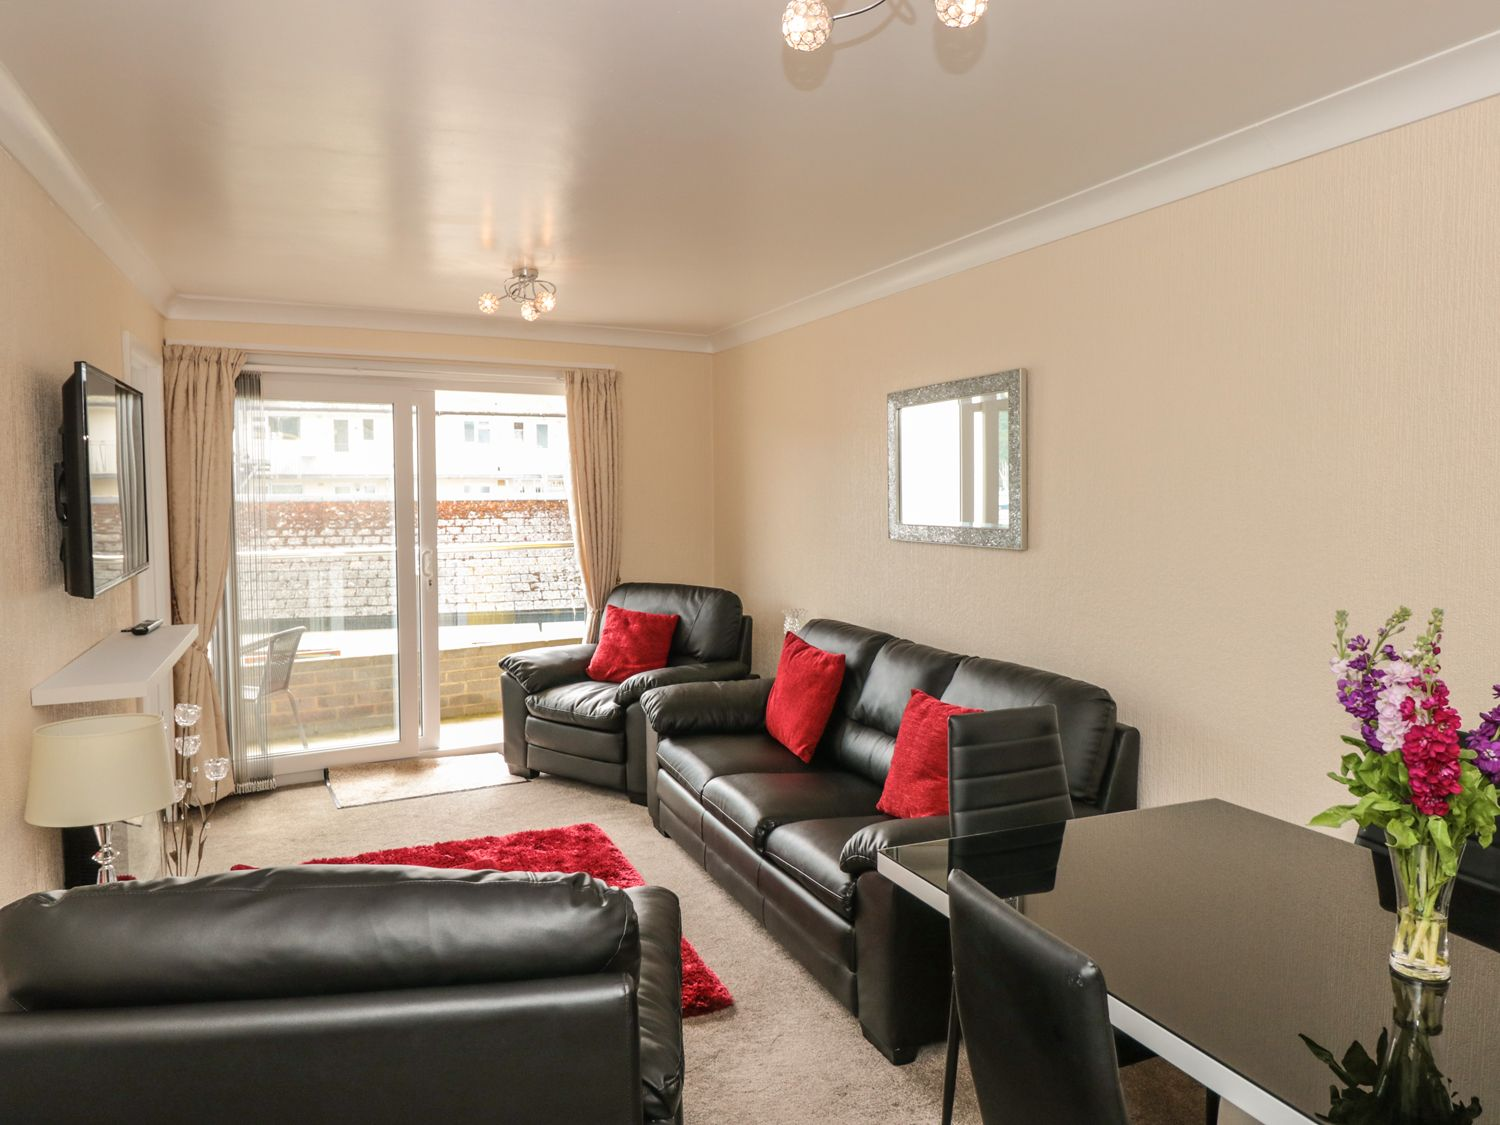 7 Dartside Court - Devon - 1011582 - photo 1